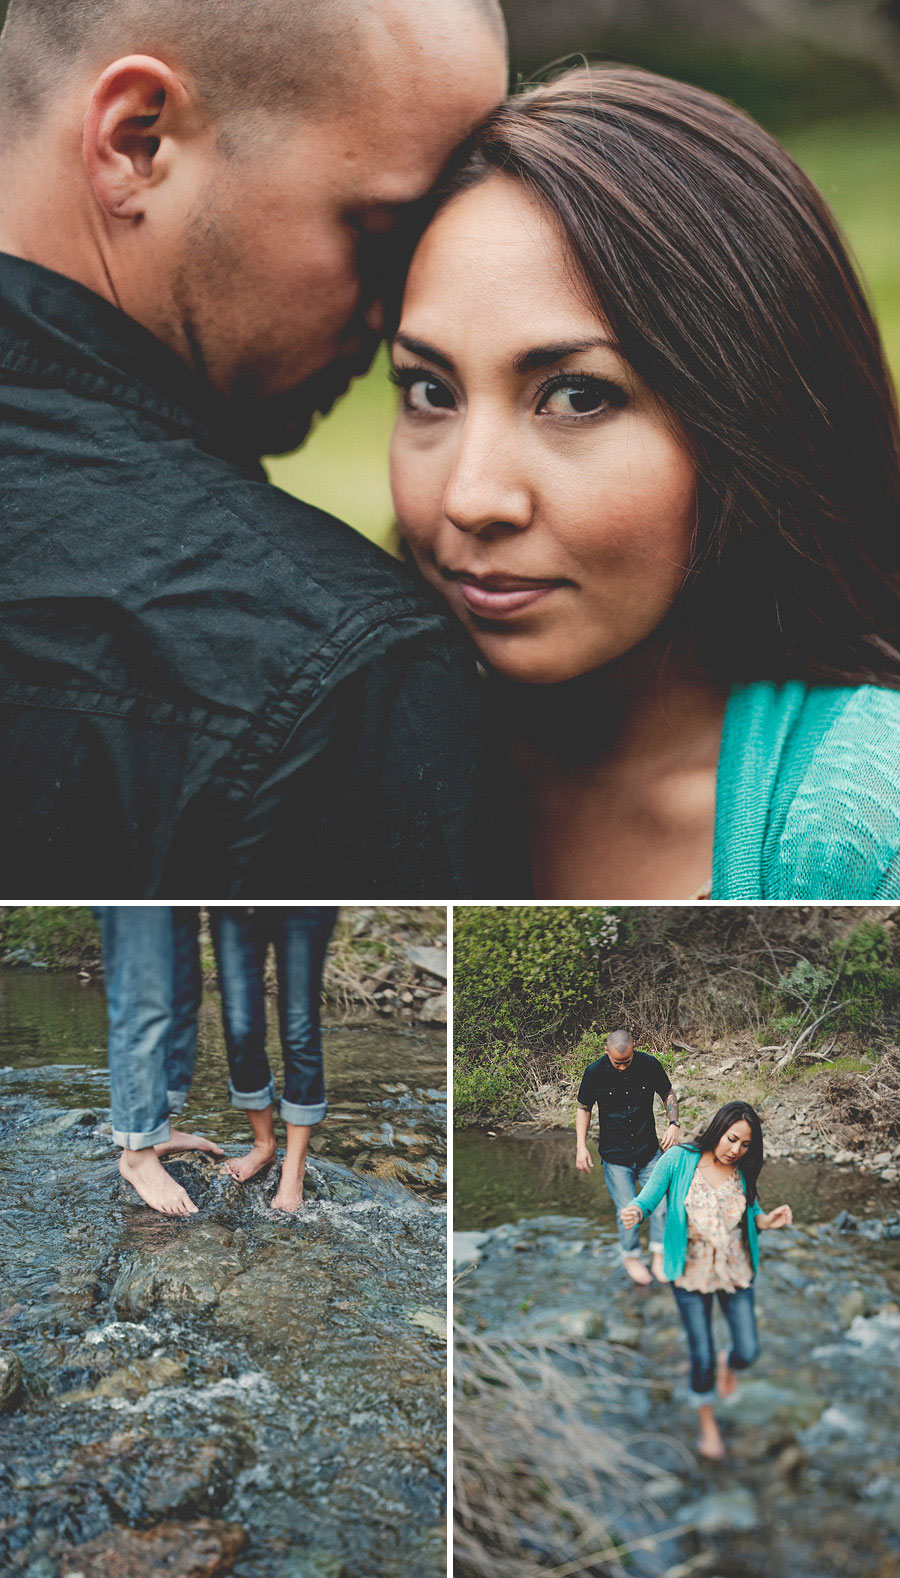 Kate-and-Brad-Orange-County-Engagement-Photographer-Canyon-Engagement-Photography-0003